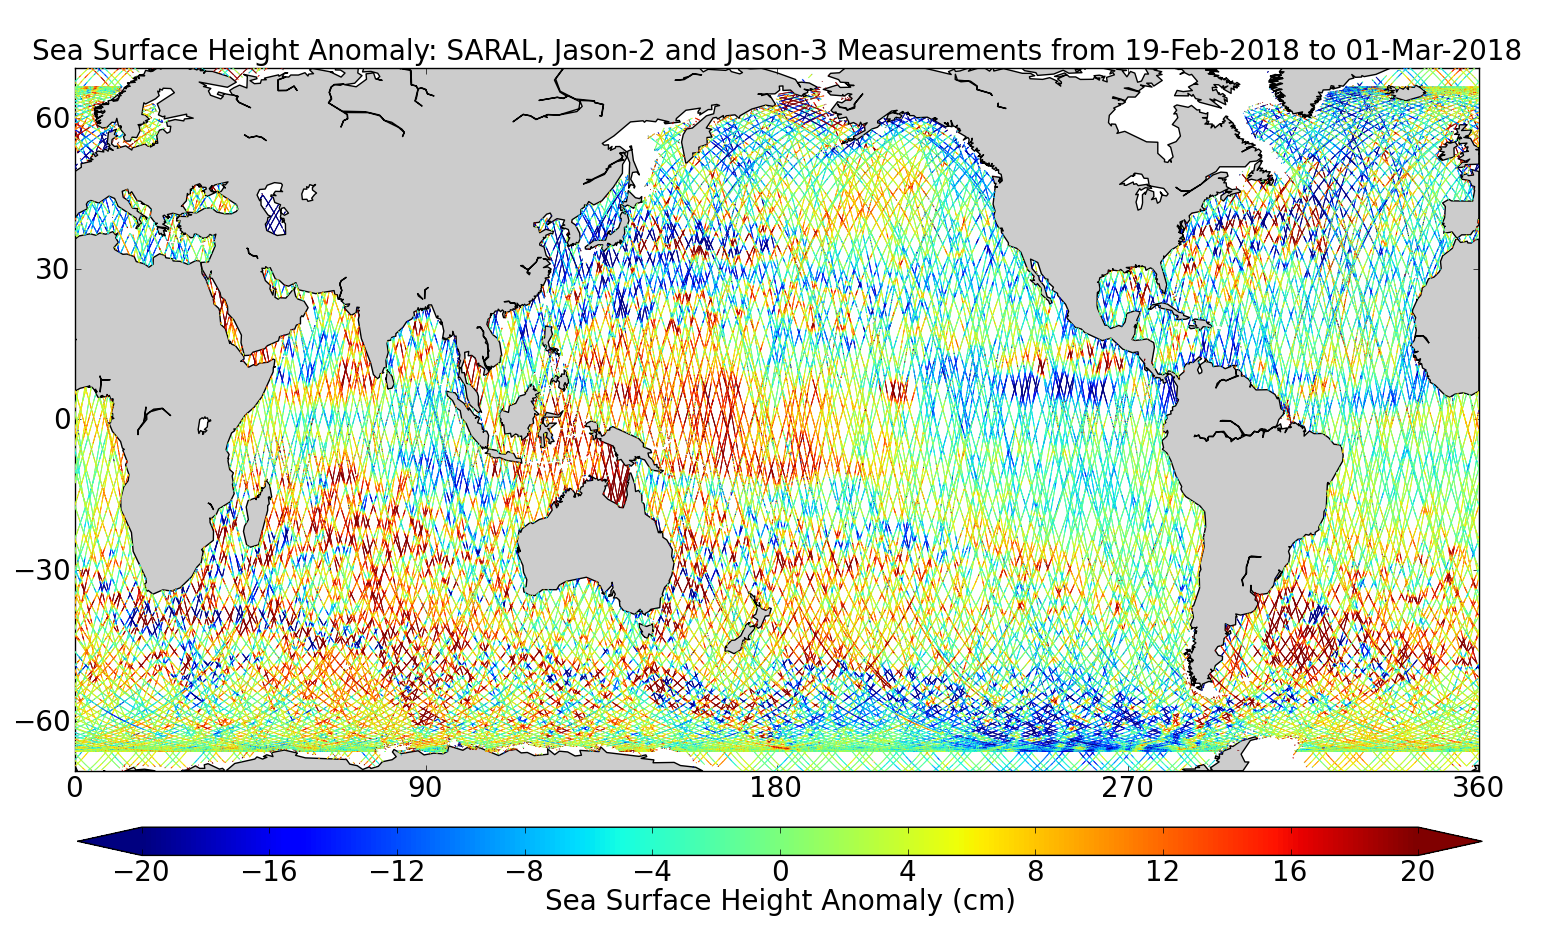 Sea Surface Height Anomaly: SARAL, Jason-2 and Jason-3 Measurements from 19-Feb-2018 to 01-Mar-2018